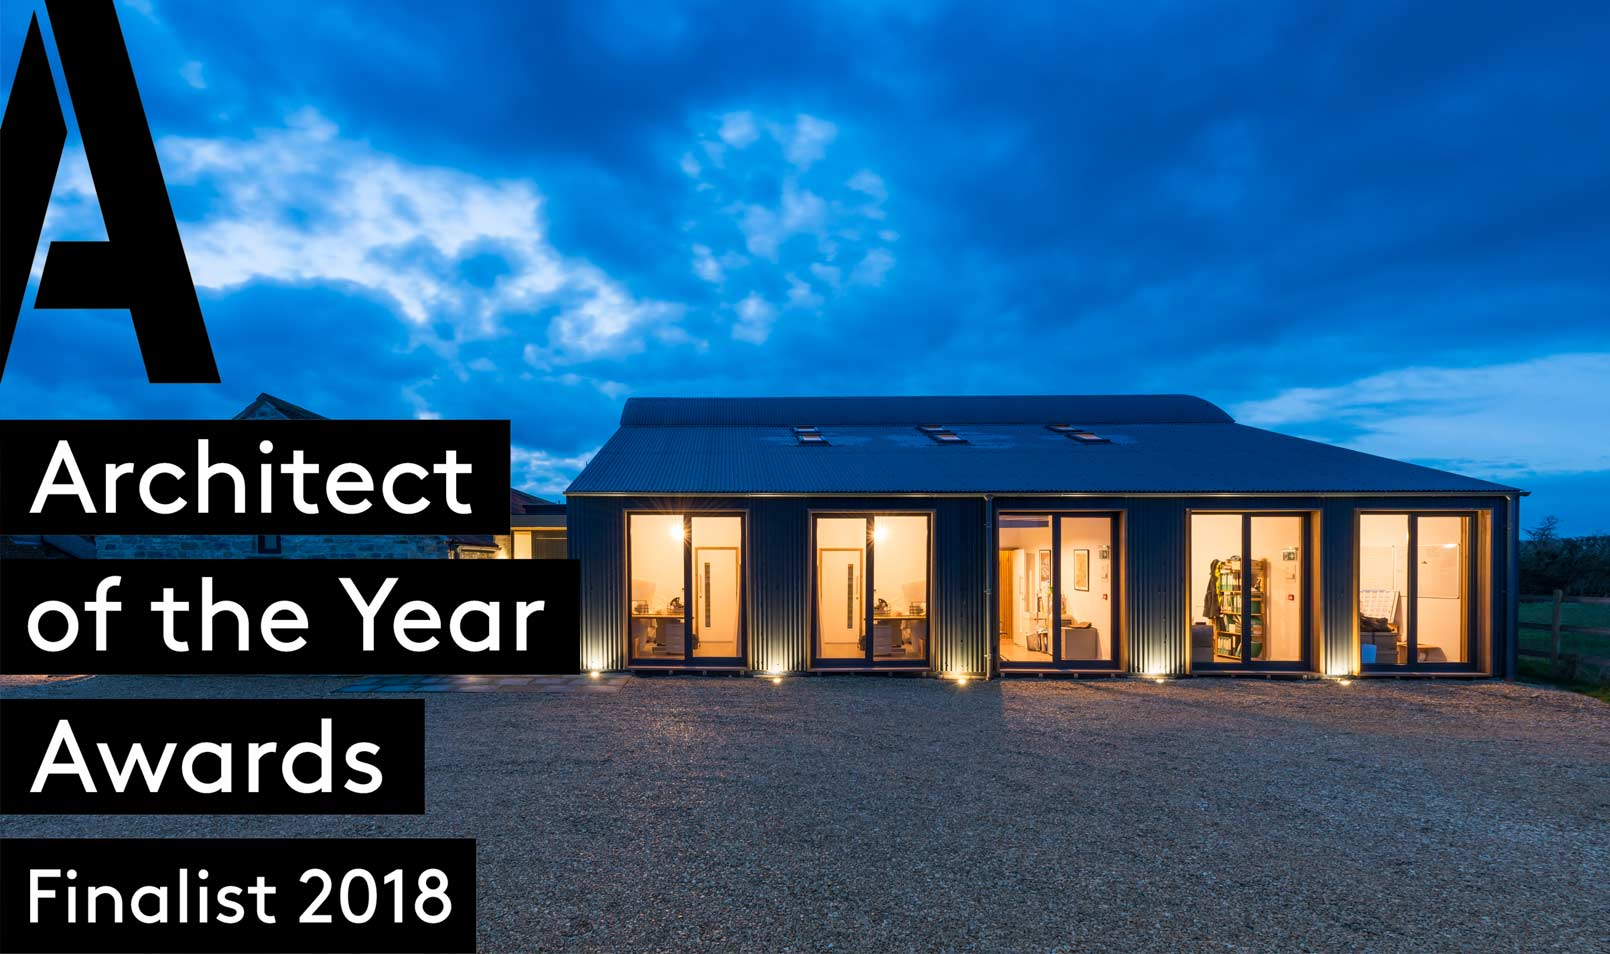 Small Project Architect of the Year - Finalist for the highly  esteemed Building Design – Architect of the Year Awards 2018 in the category of small project architect of the year